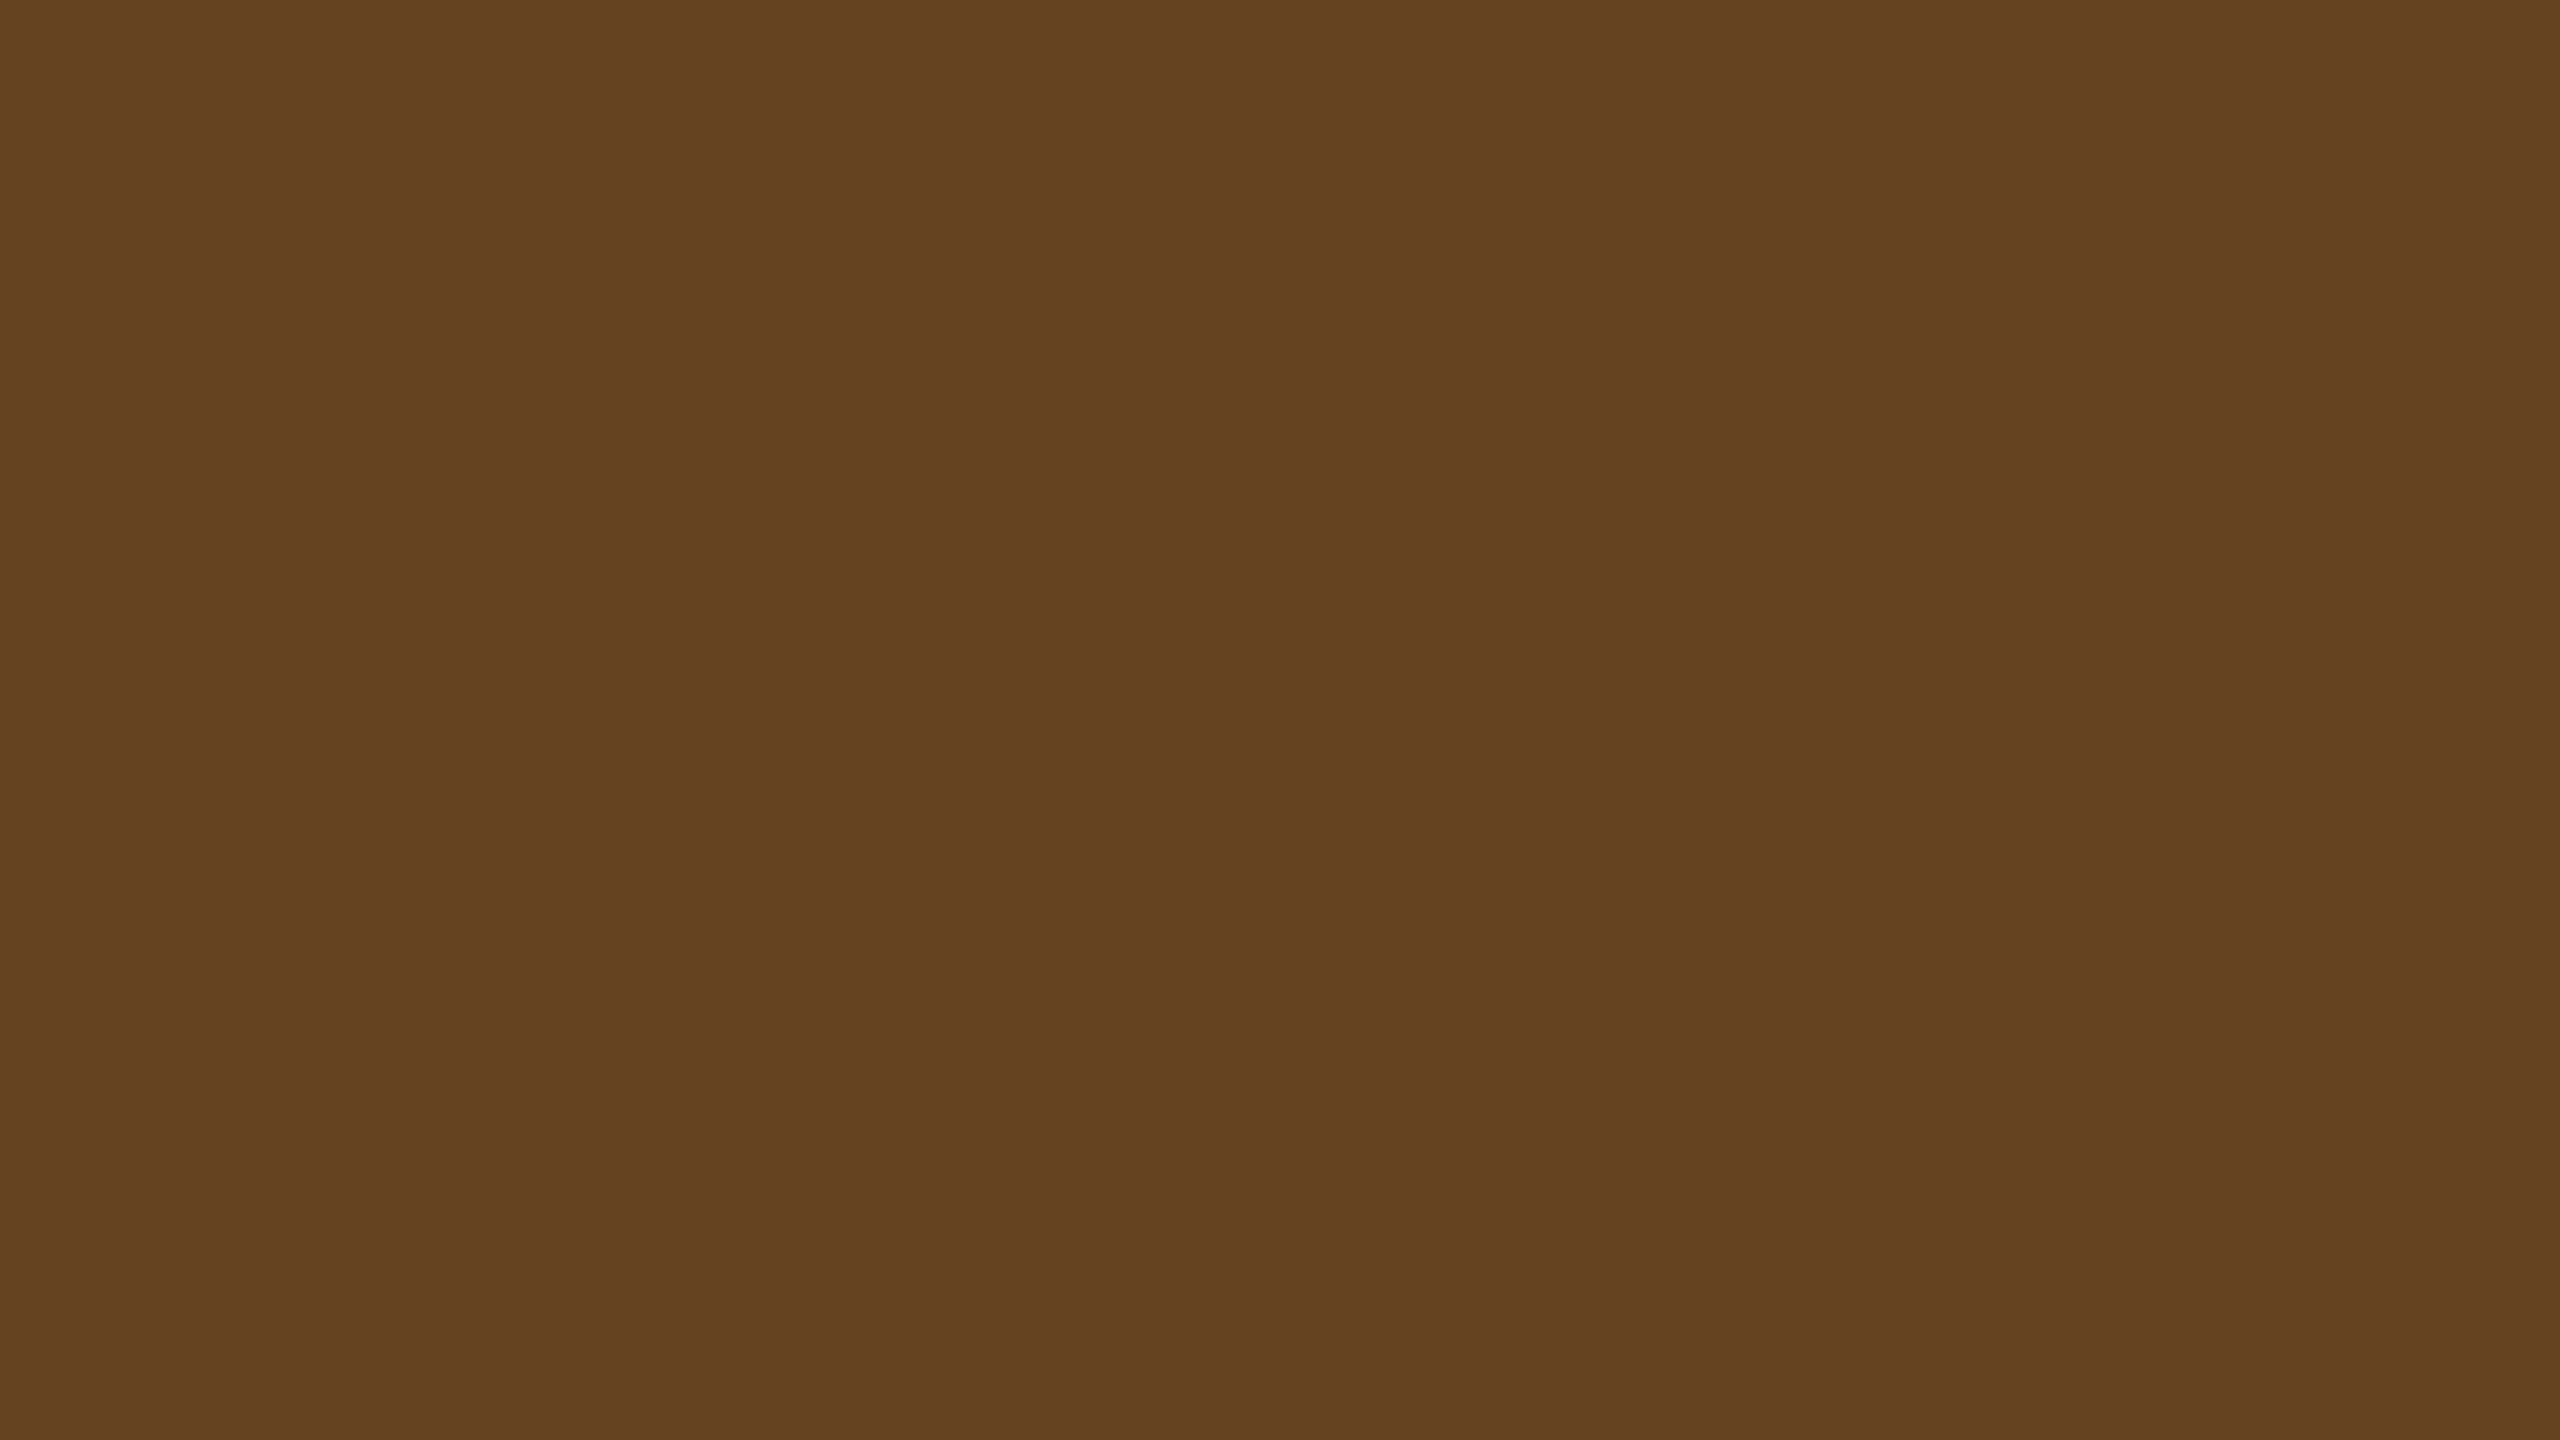 brown-solid-color-wallpaper-hd-wallpapers | wallpaper.wiki